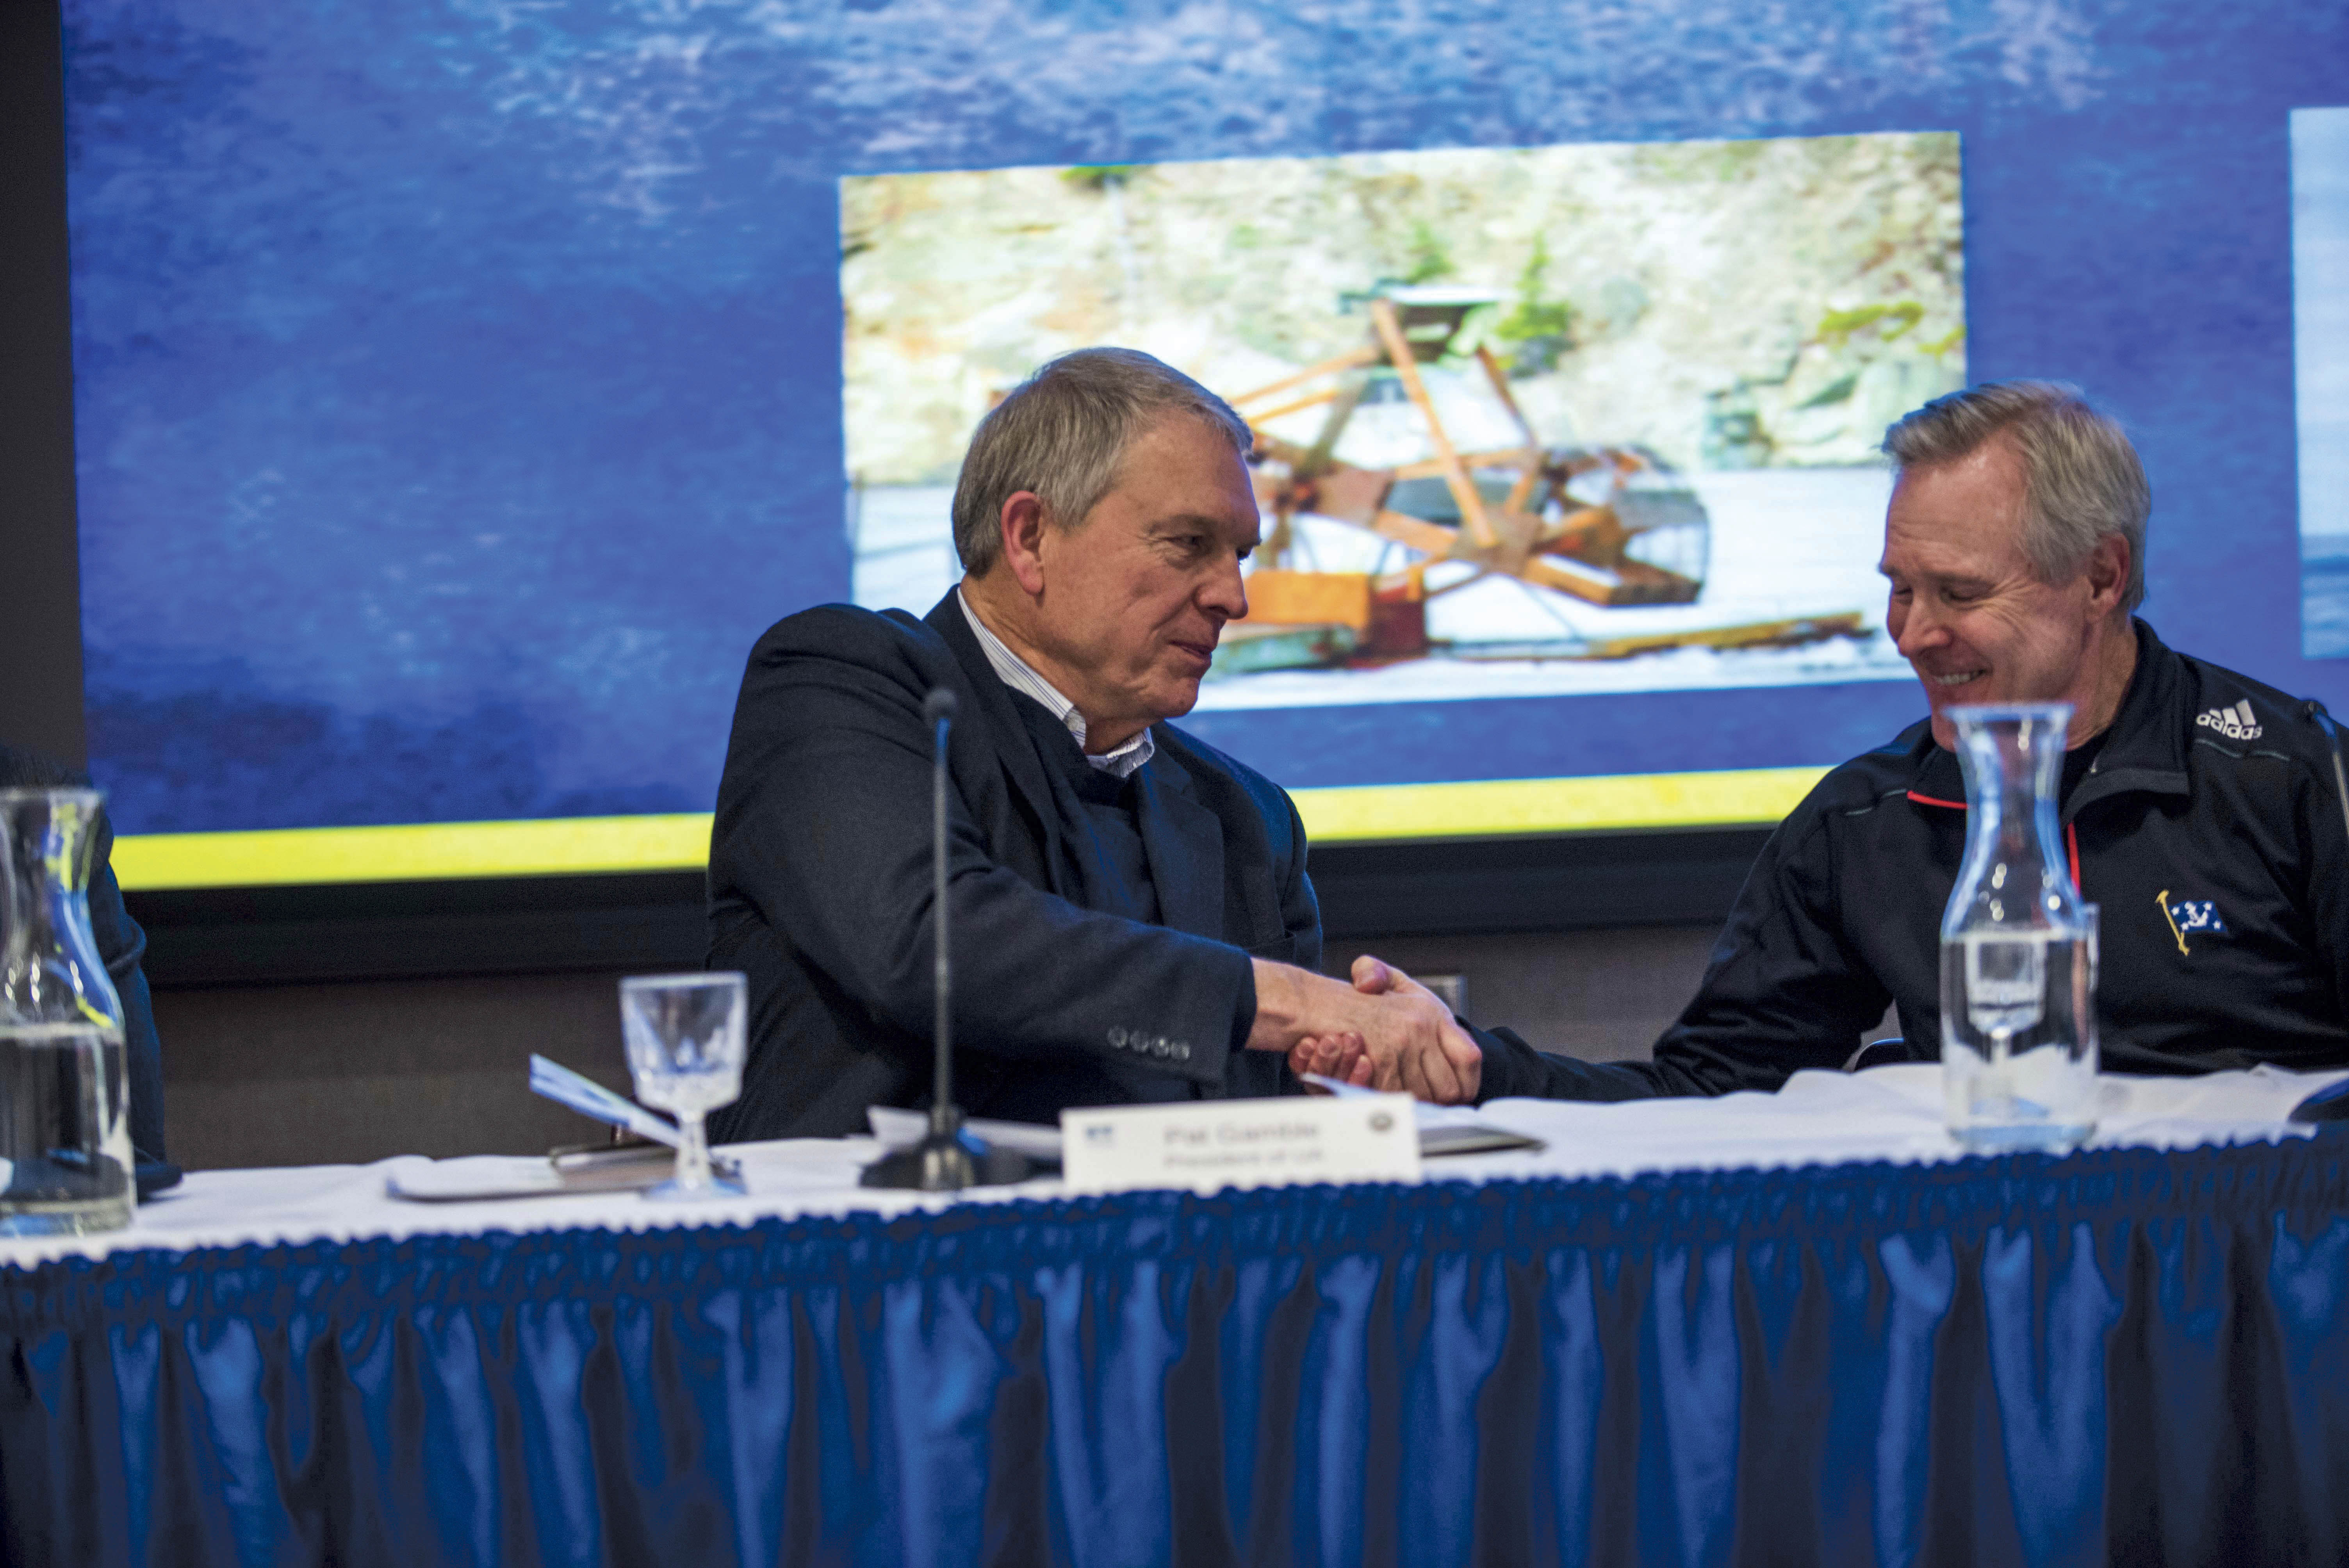 With its prominence in the Arctic, Alaska has been the location of several high profile meetings on climate change in the last year. Pictured above is UA president Pat Gamble shaking hands with U.S. Secretary of the Navy Ray Mabus, following a discussion on meeting the challenges of the changing Arctic. - Zayn Roohi / Photo Editor